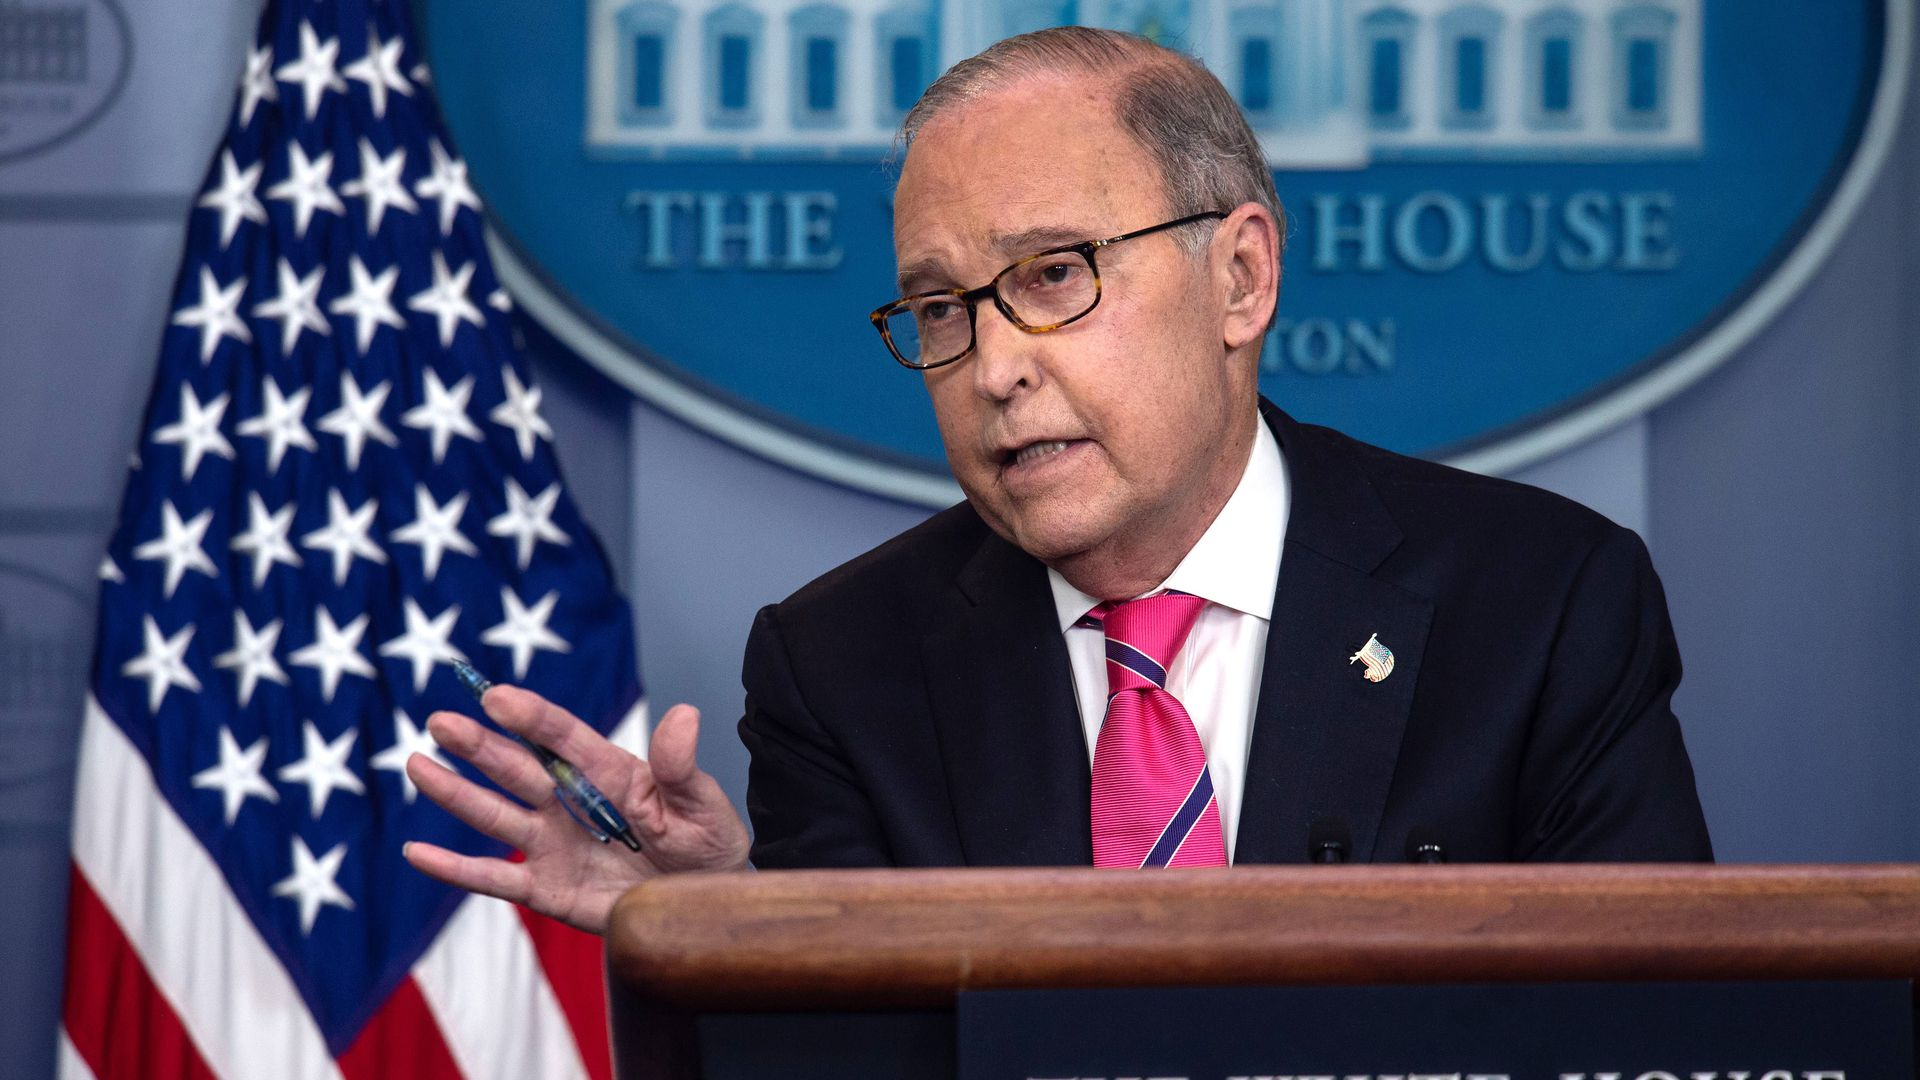 Larry Kudlow at the White House.